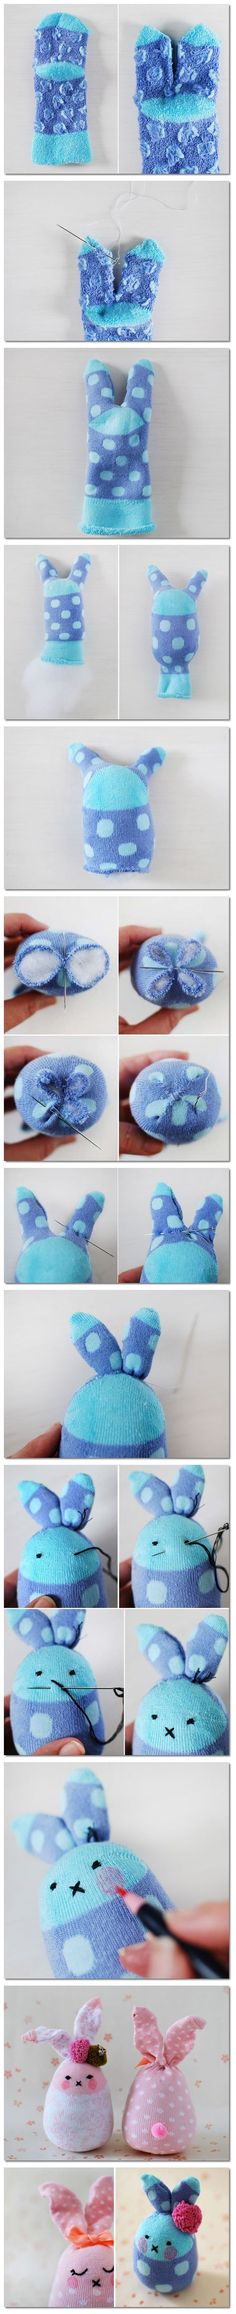 How to make Socks Bunny DIY step by step tutorial instruction | Welcome Craft